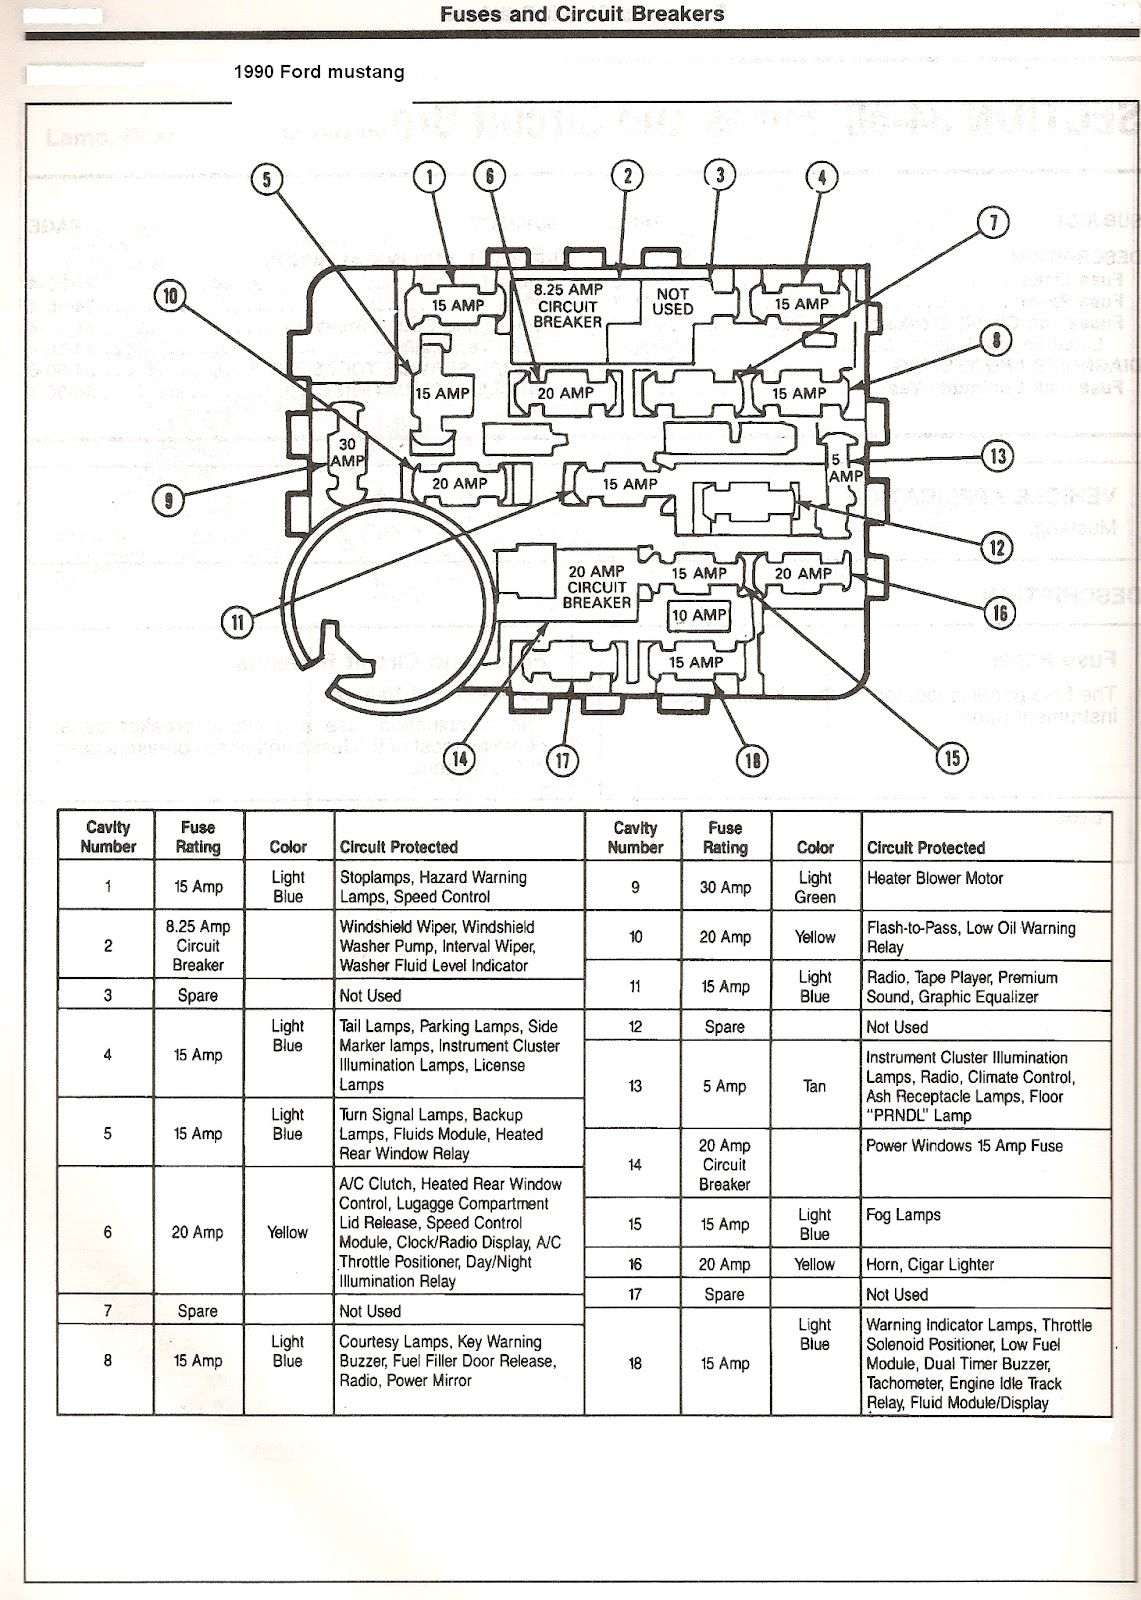 92 mustang fuse box diagram data schema fuse diagram 93